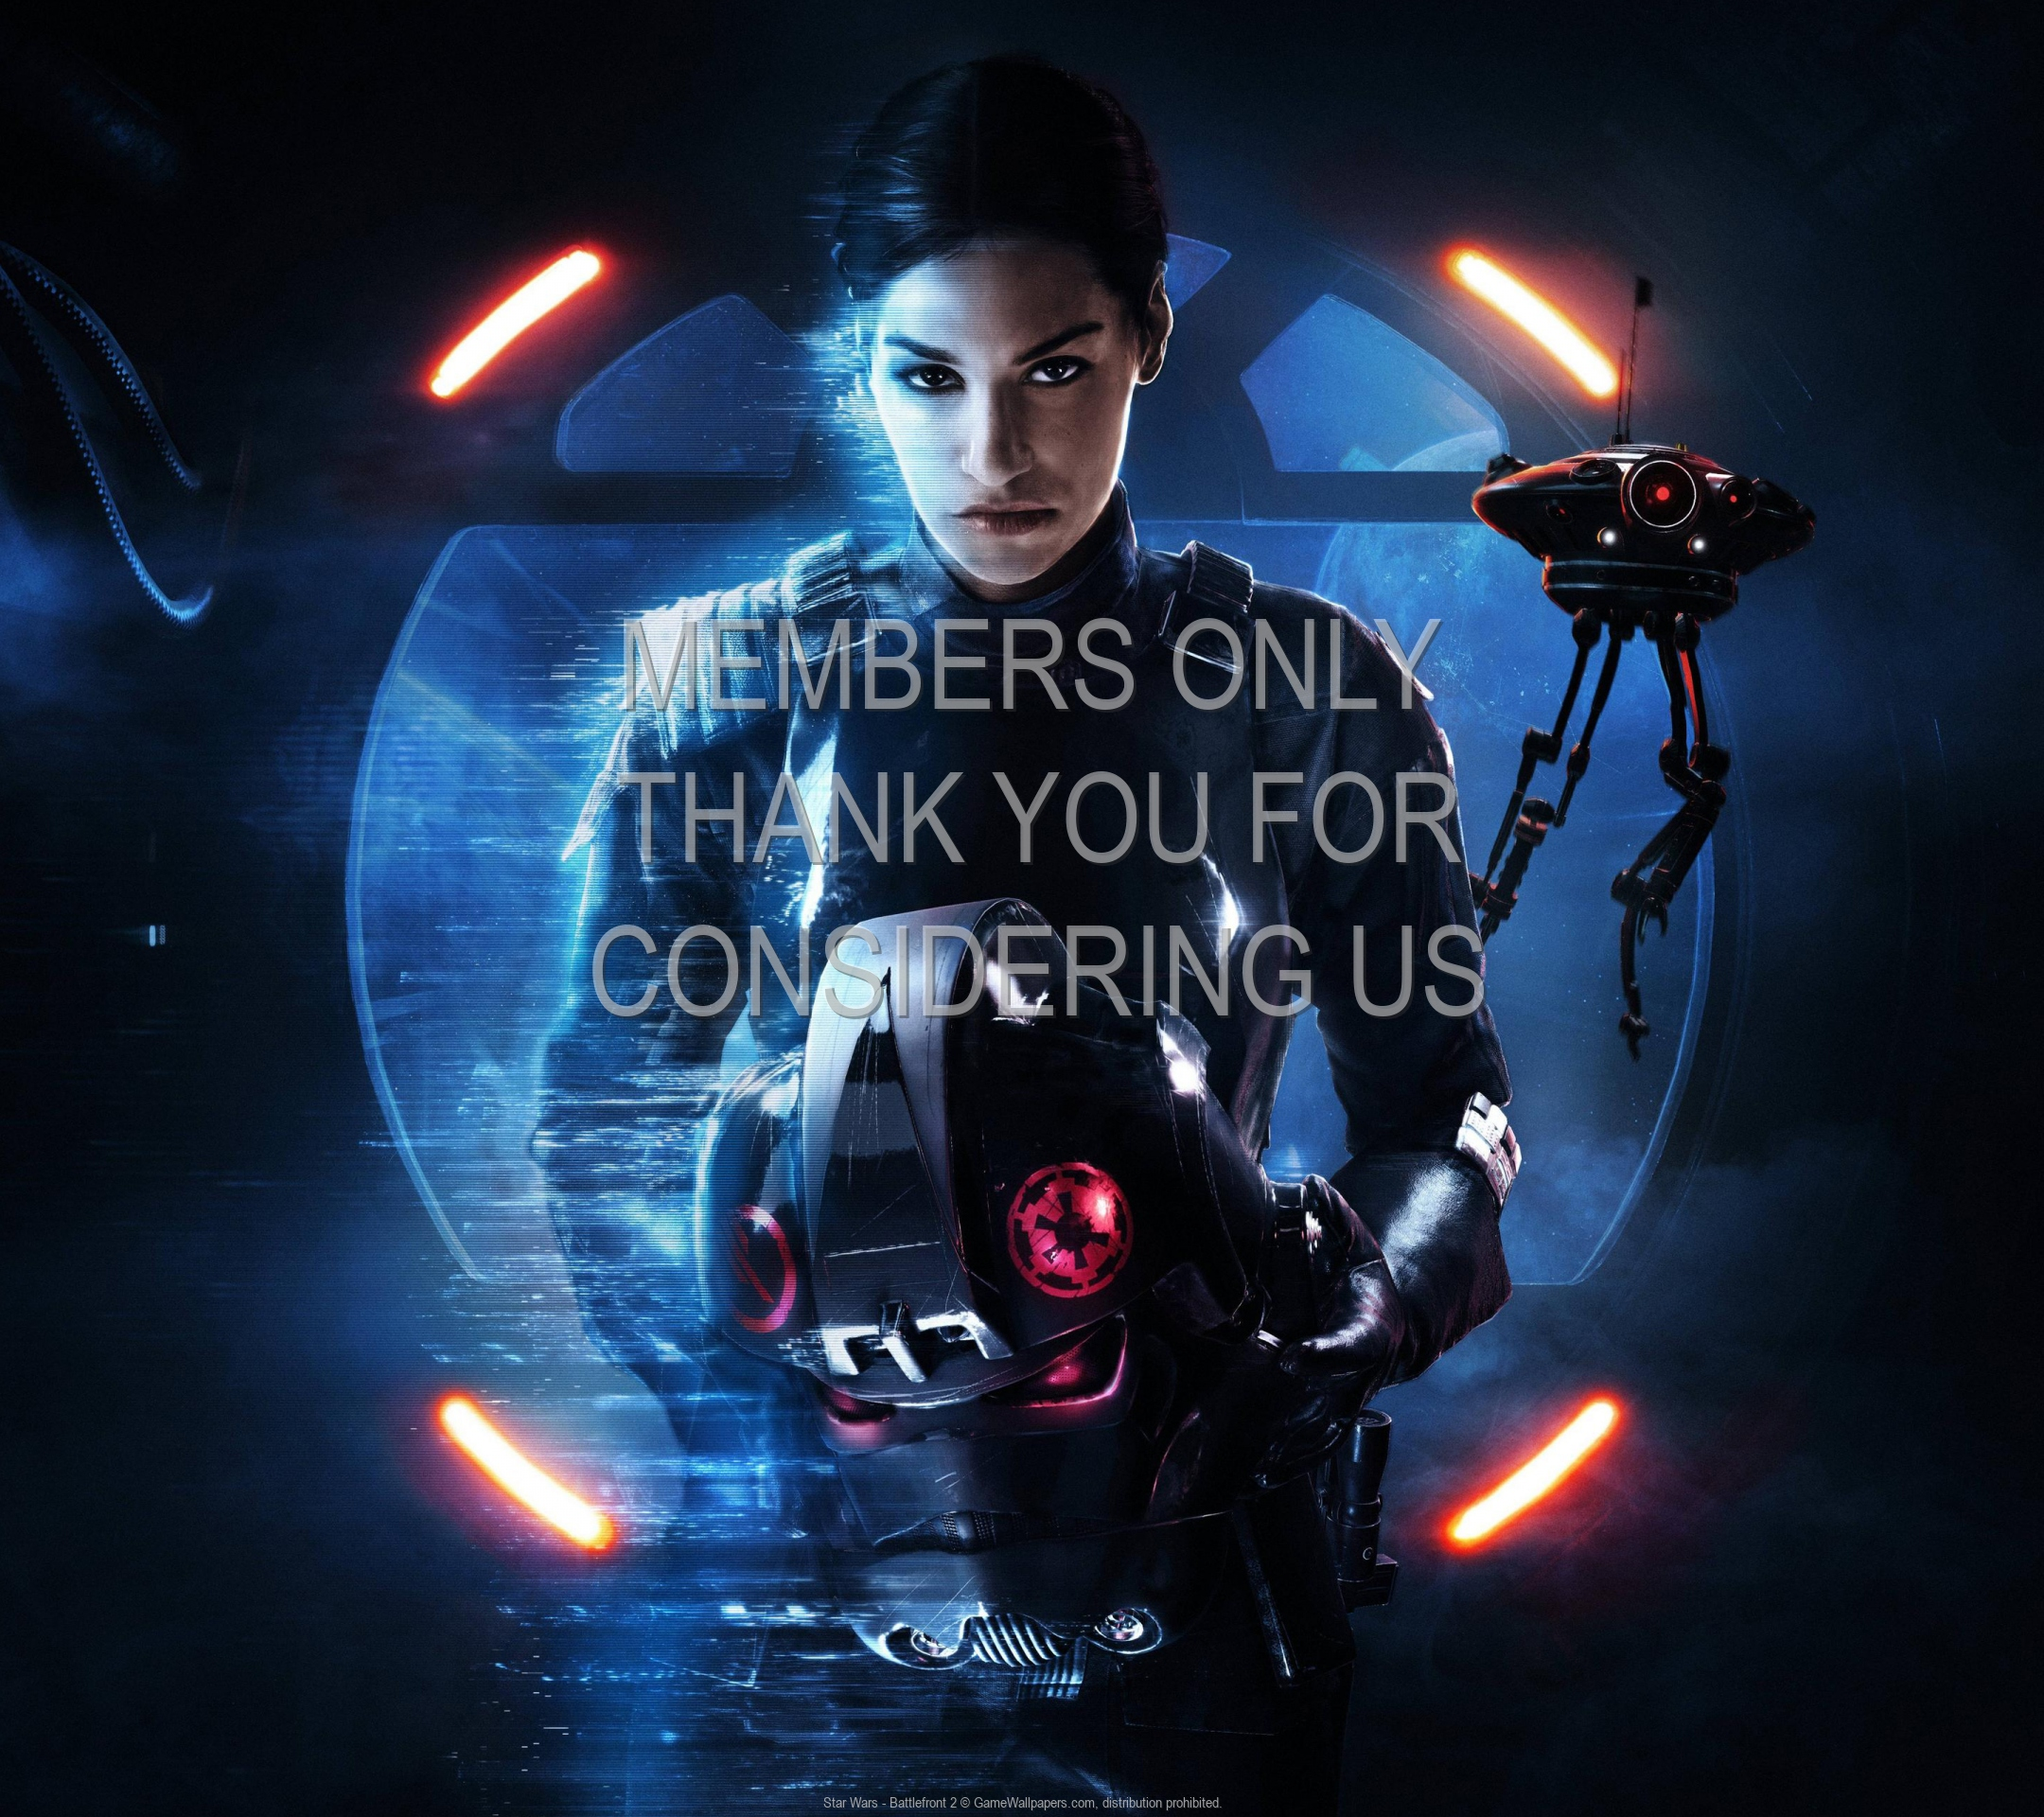 Star Wars - Battlefront 2 1920x1080 Mobile fond d'écran 05